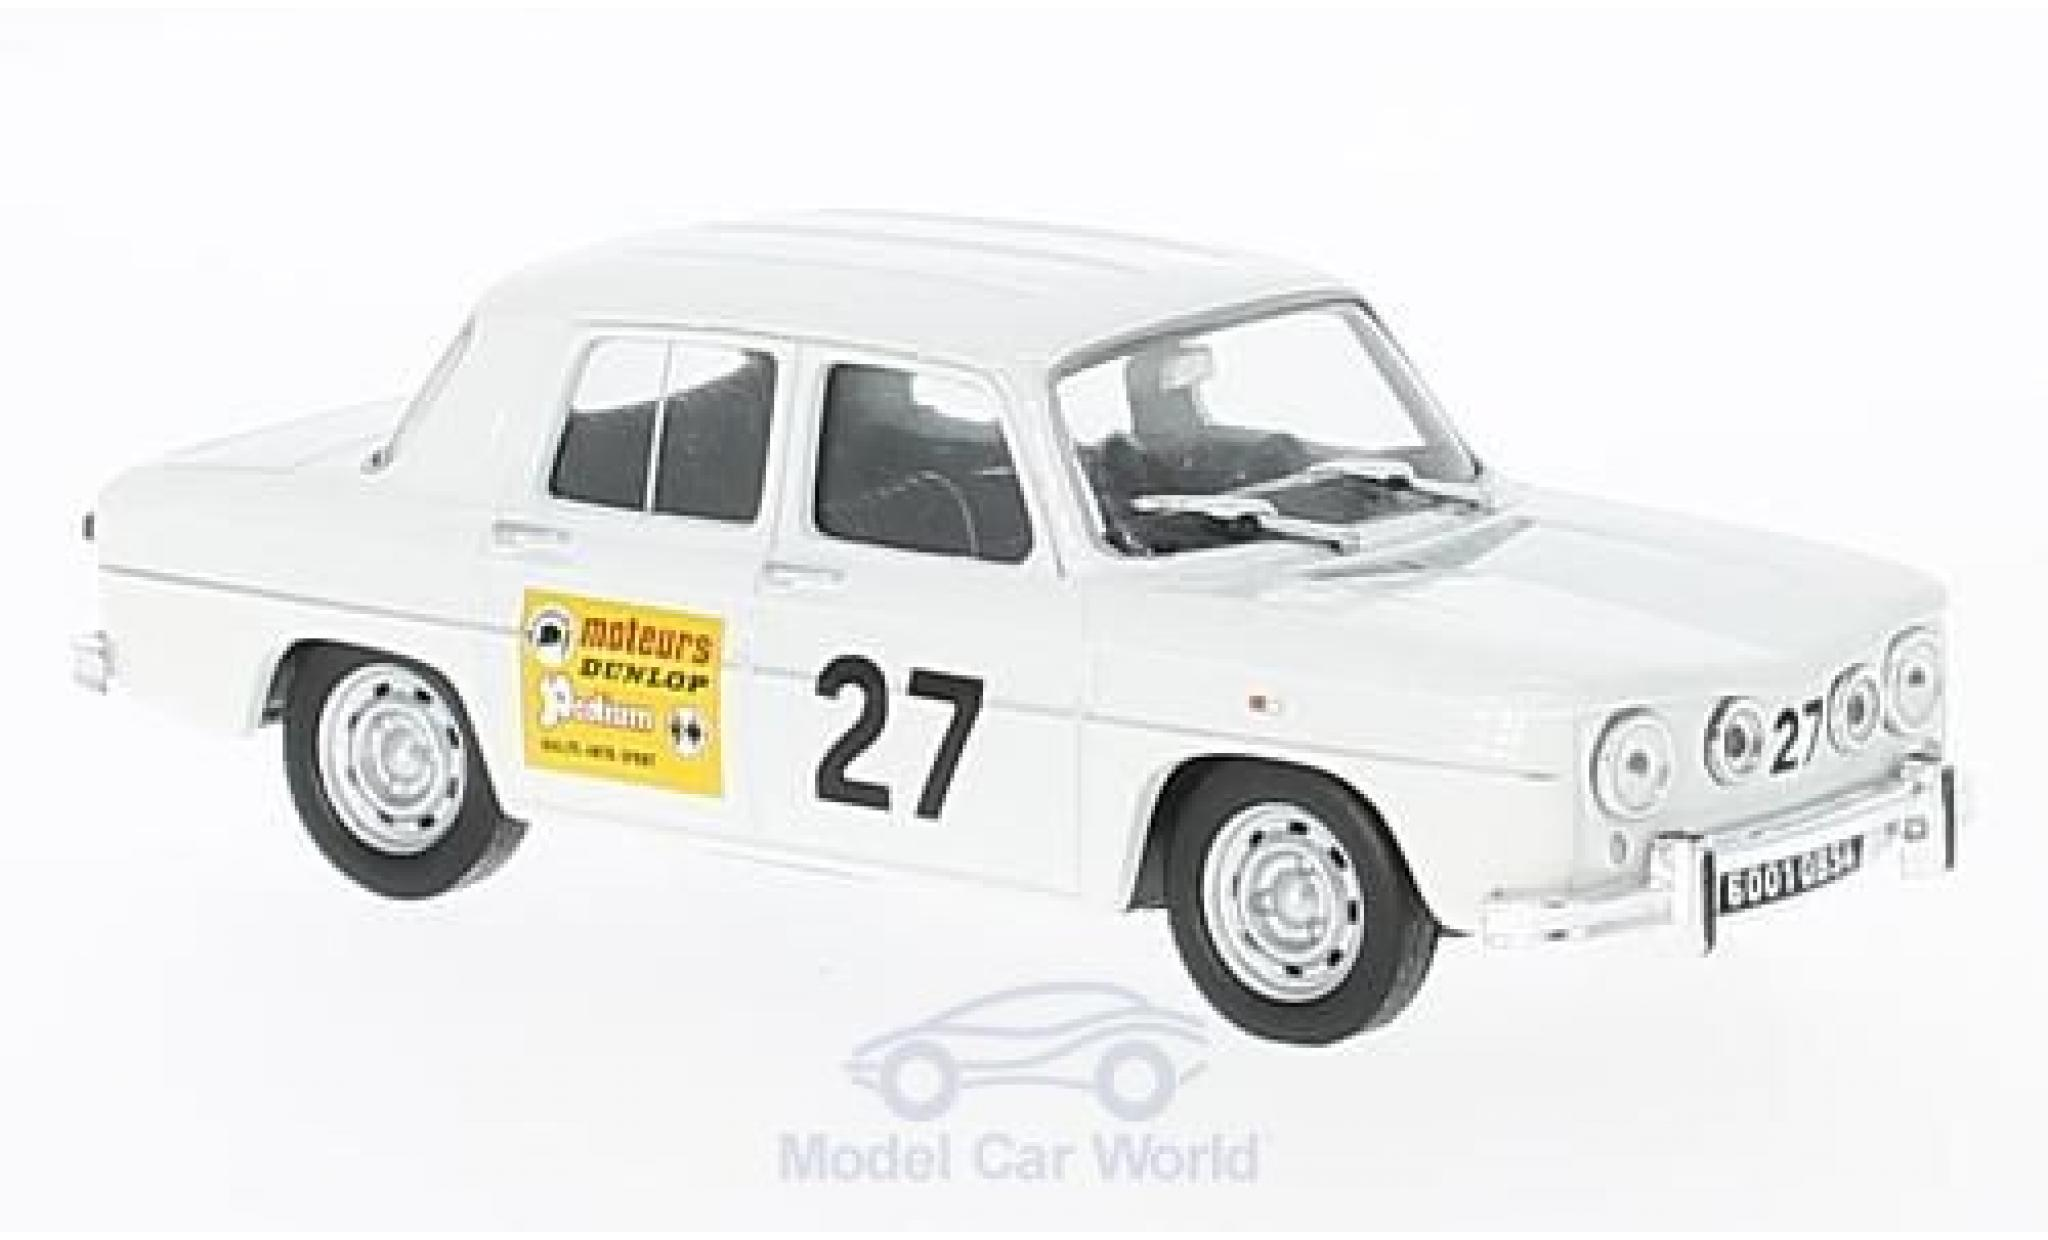 Diecast Model Cars Renault 8 1 43 Specialc 94 Gordini No 27 196 Coupe Gordini Ohne Vitrine Alldiecast Us